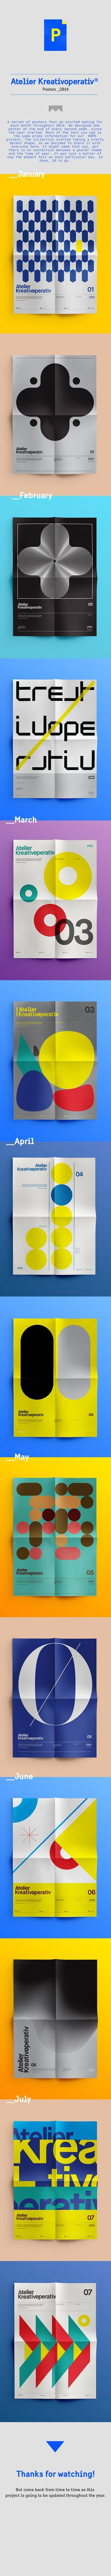 Kreativoperativ® / A Year in Posters